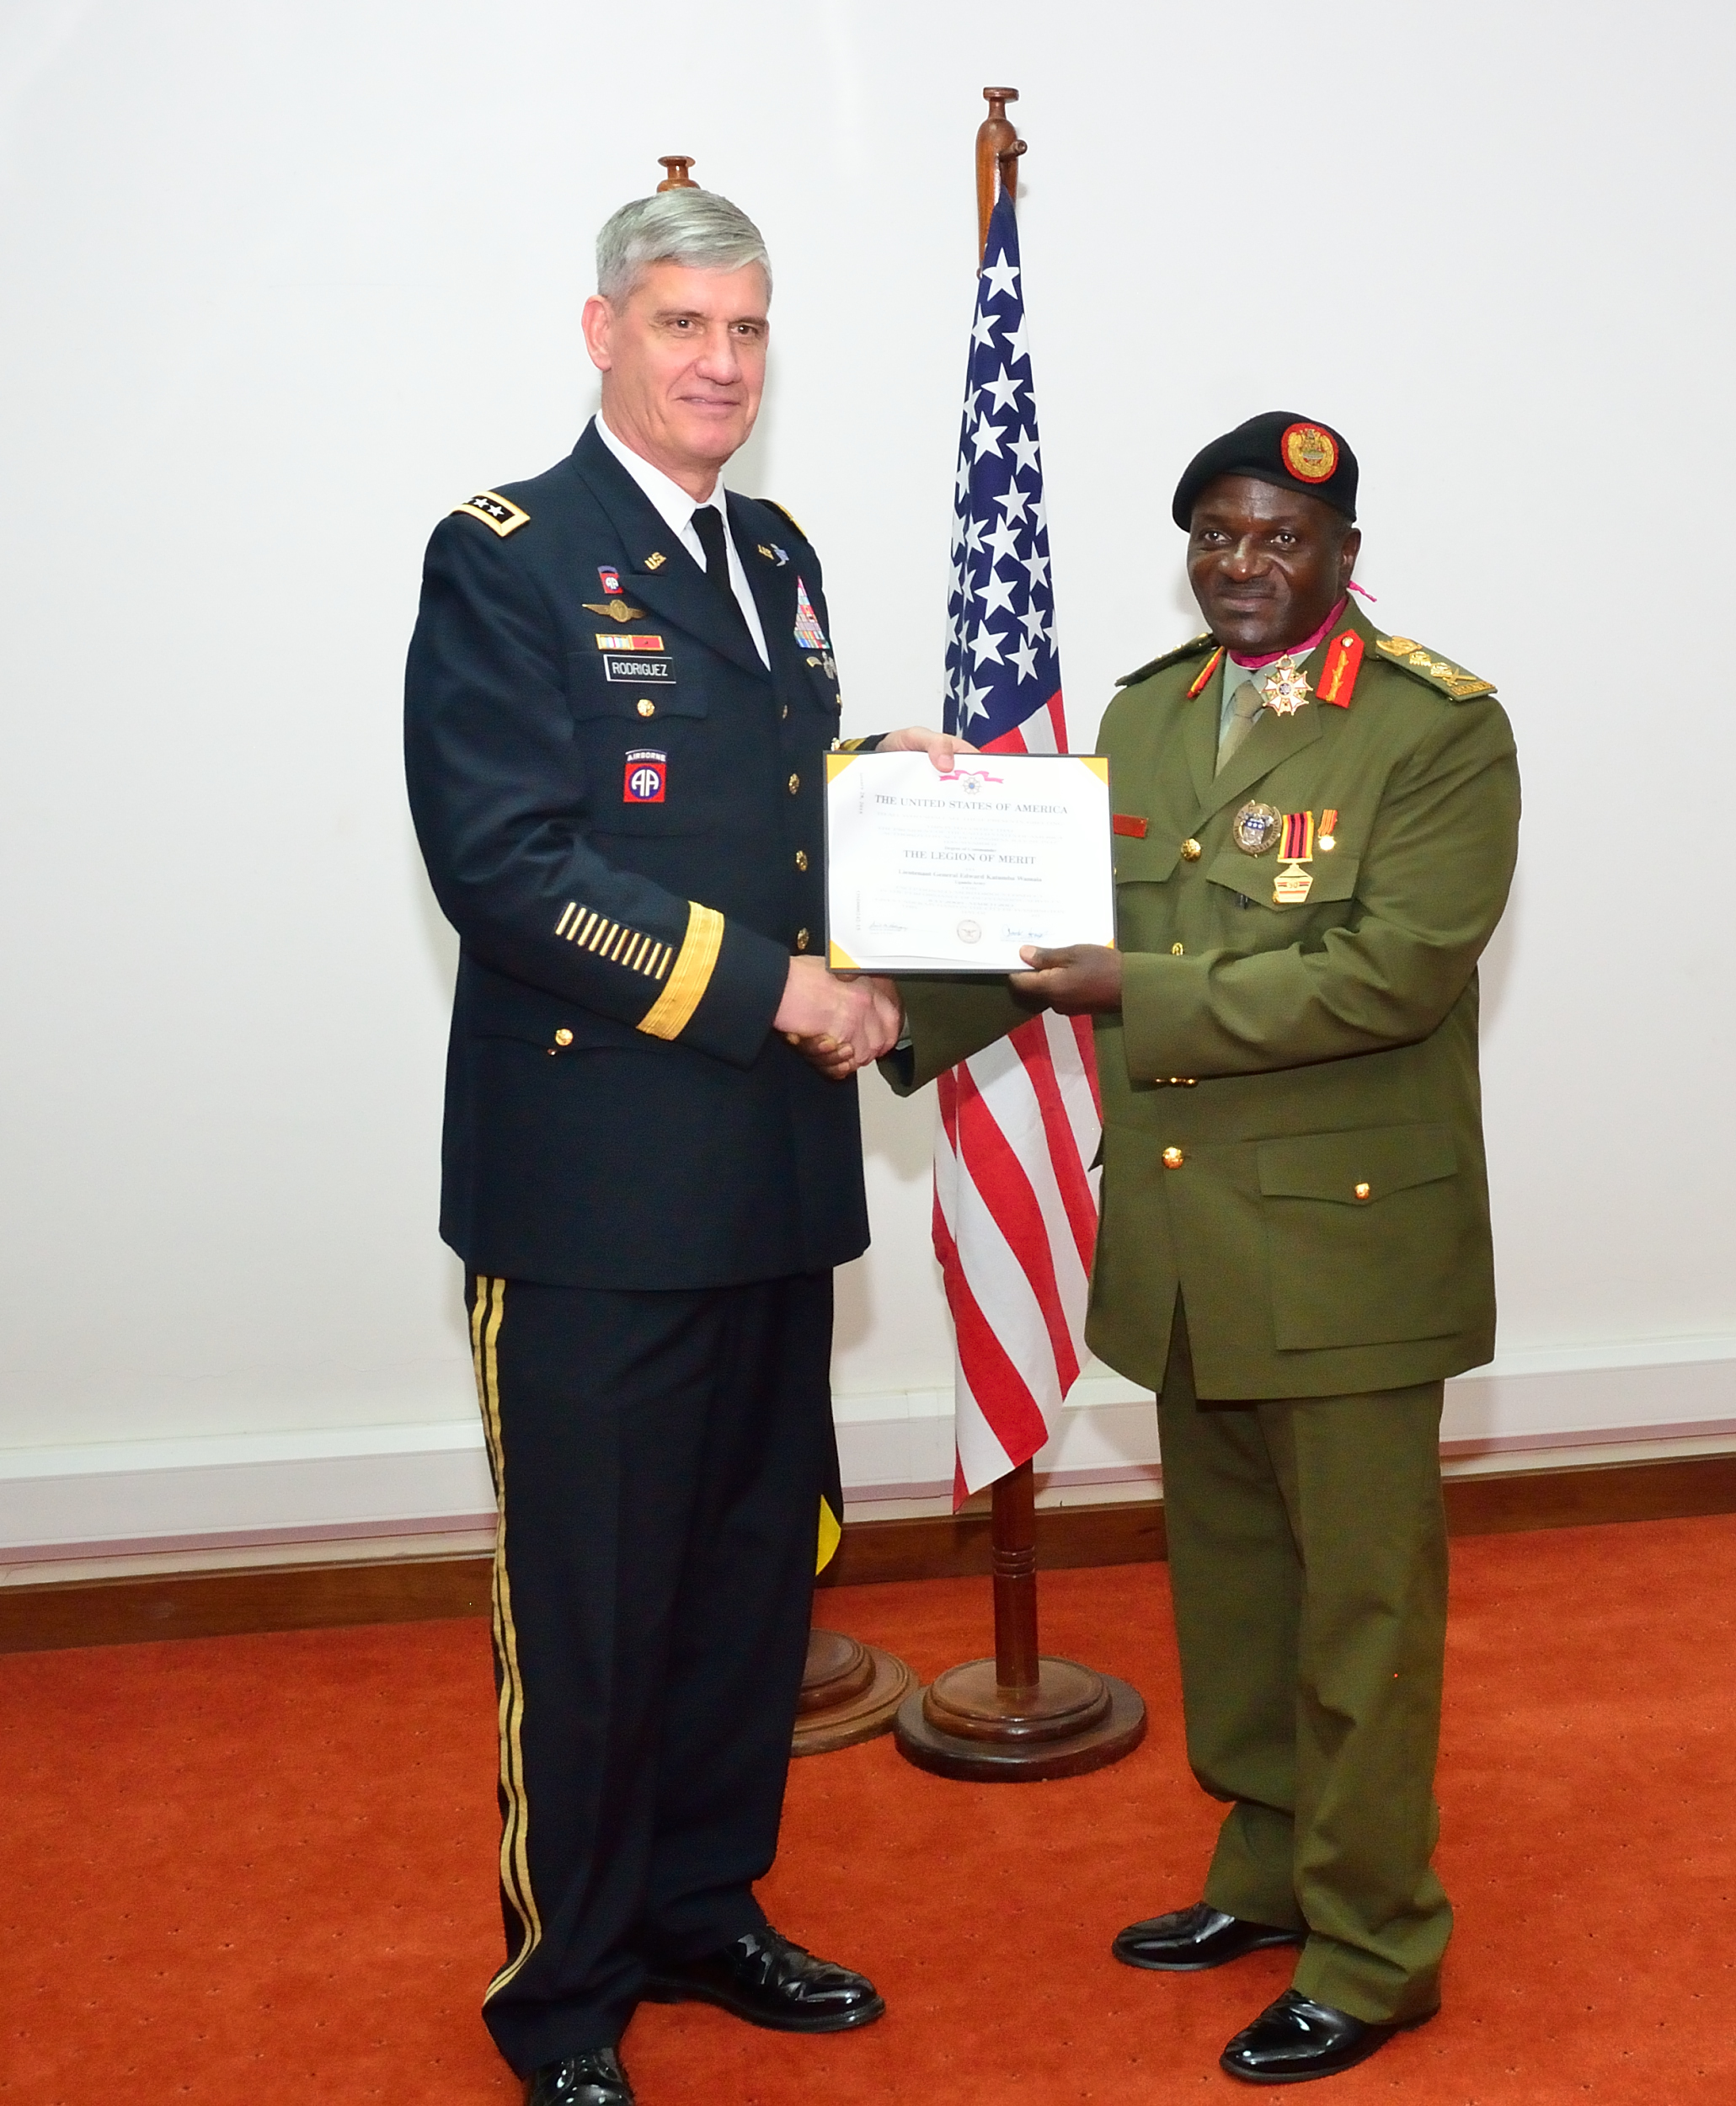 U.S. Army Gen. David M. Rodriguez, the commander of U.S. Africa Command met Ugandan Chief of Defense Forces Katumba Wamala and other senior officials of the Uganda People's Defense Forces in Kampala Sept. 30, 2015. Rodriguez also presented the Legion of Merit, the highest U.S. military award for foreign citizens, to six Ugandan People's Defense Force officers. (Photo courtesy U.S. Embassy - Kampala)